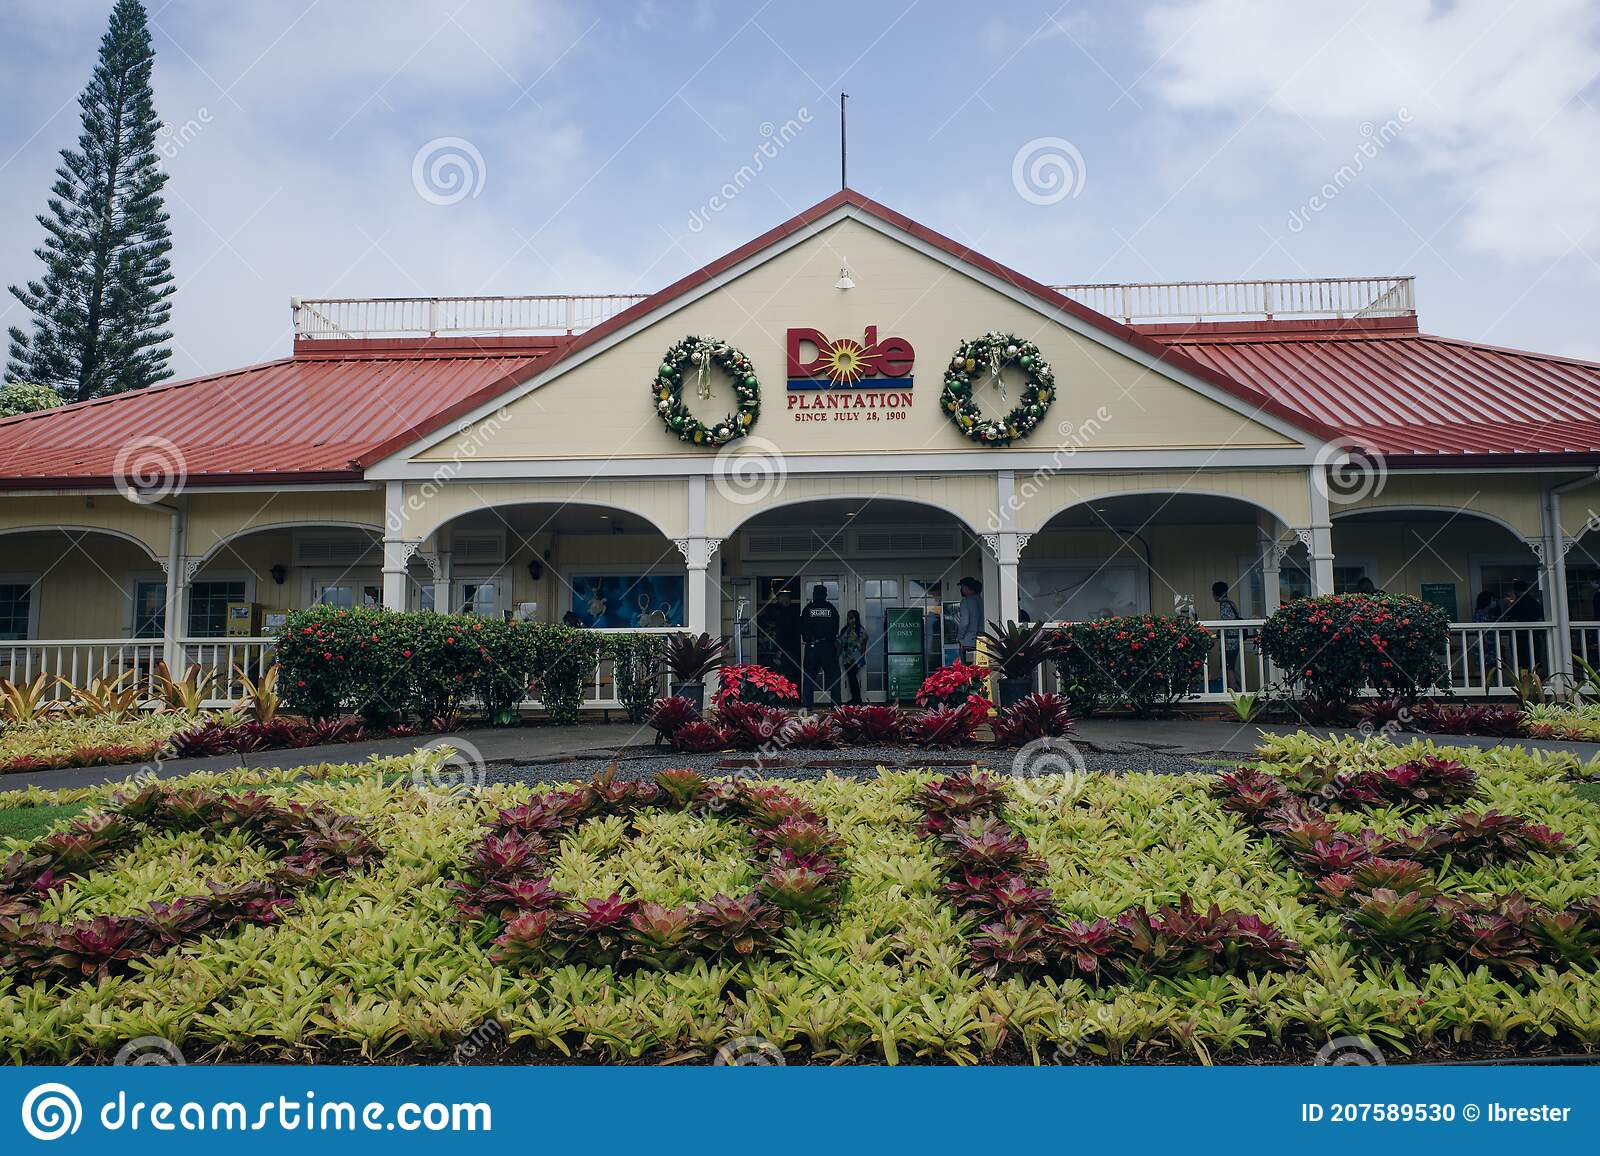 Dole Plantation Garden Photos Free Royalty Free Stock Photos From Dreamstime